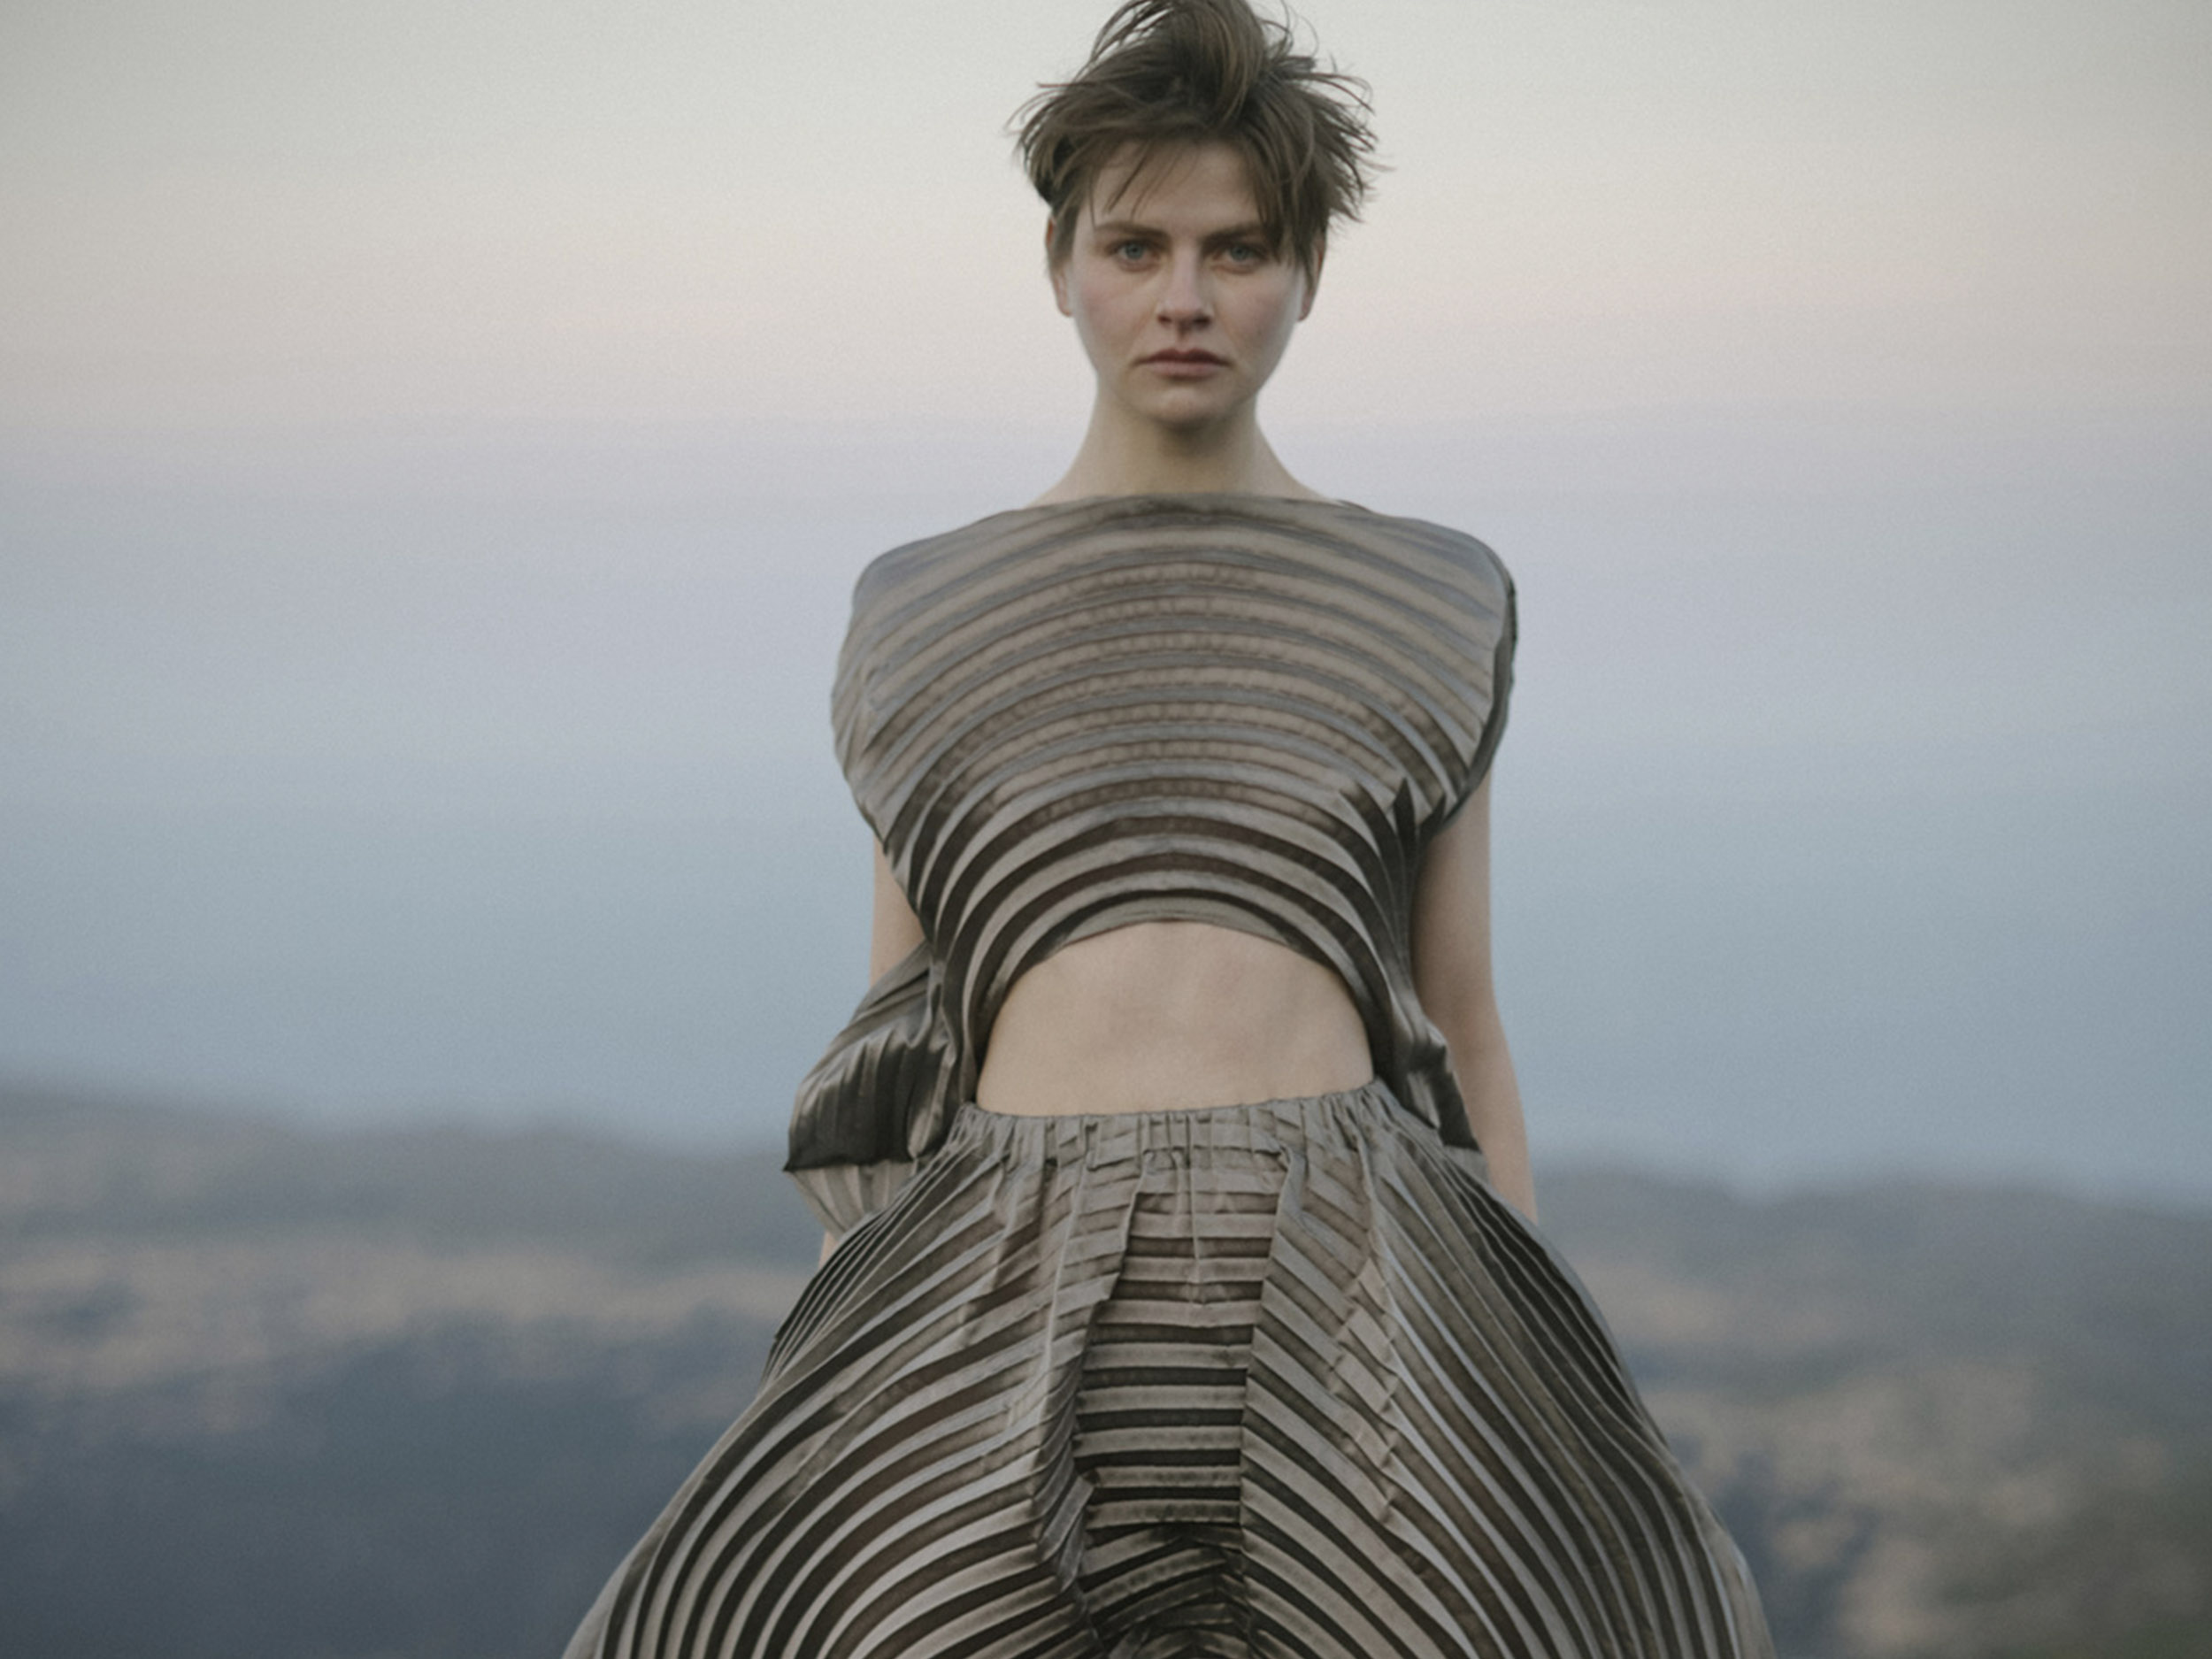 Issey Miyake strikes a sophisticated balance between organic beauty and futuristic utility